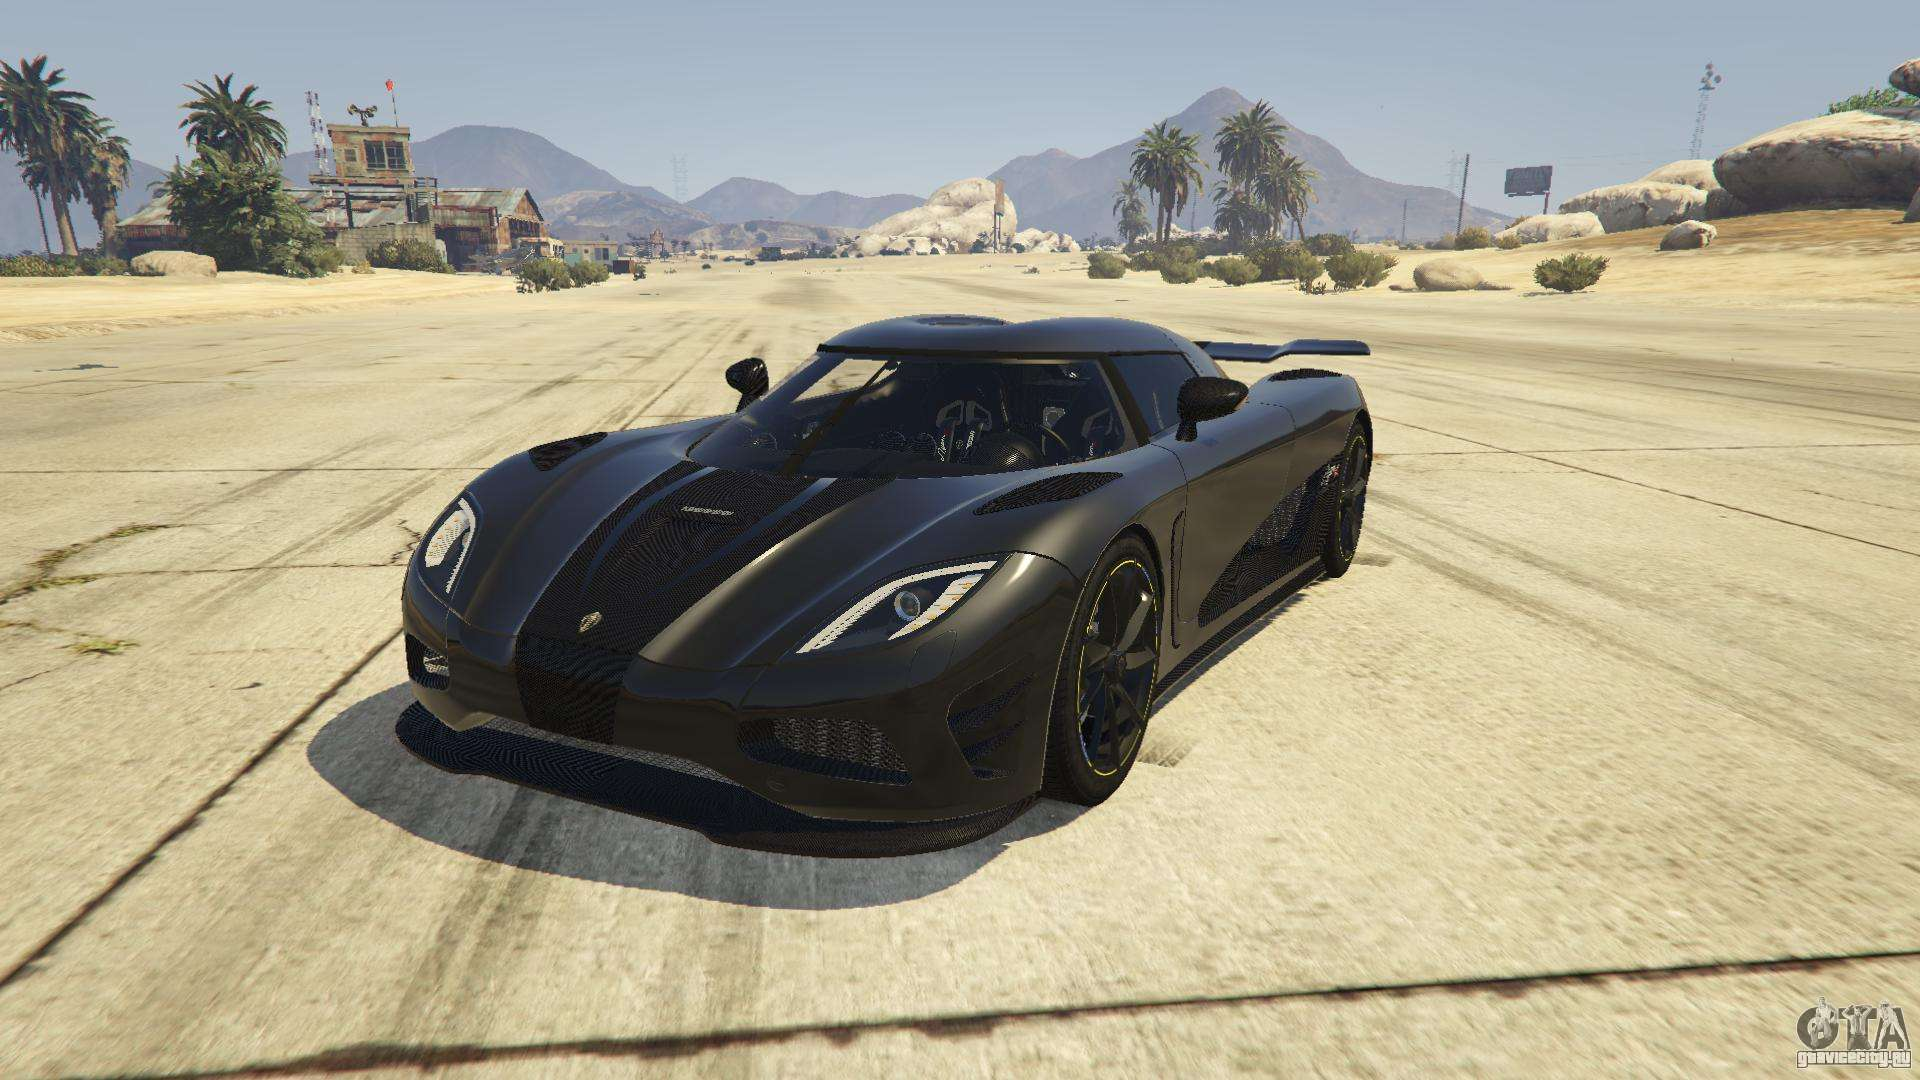 Where Can I Buy A Koenigsegg Agera R Awesome 2014 Koenigsegg Agera R V1 0 дРя Gta 5